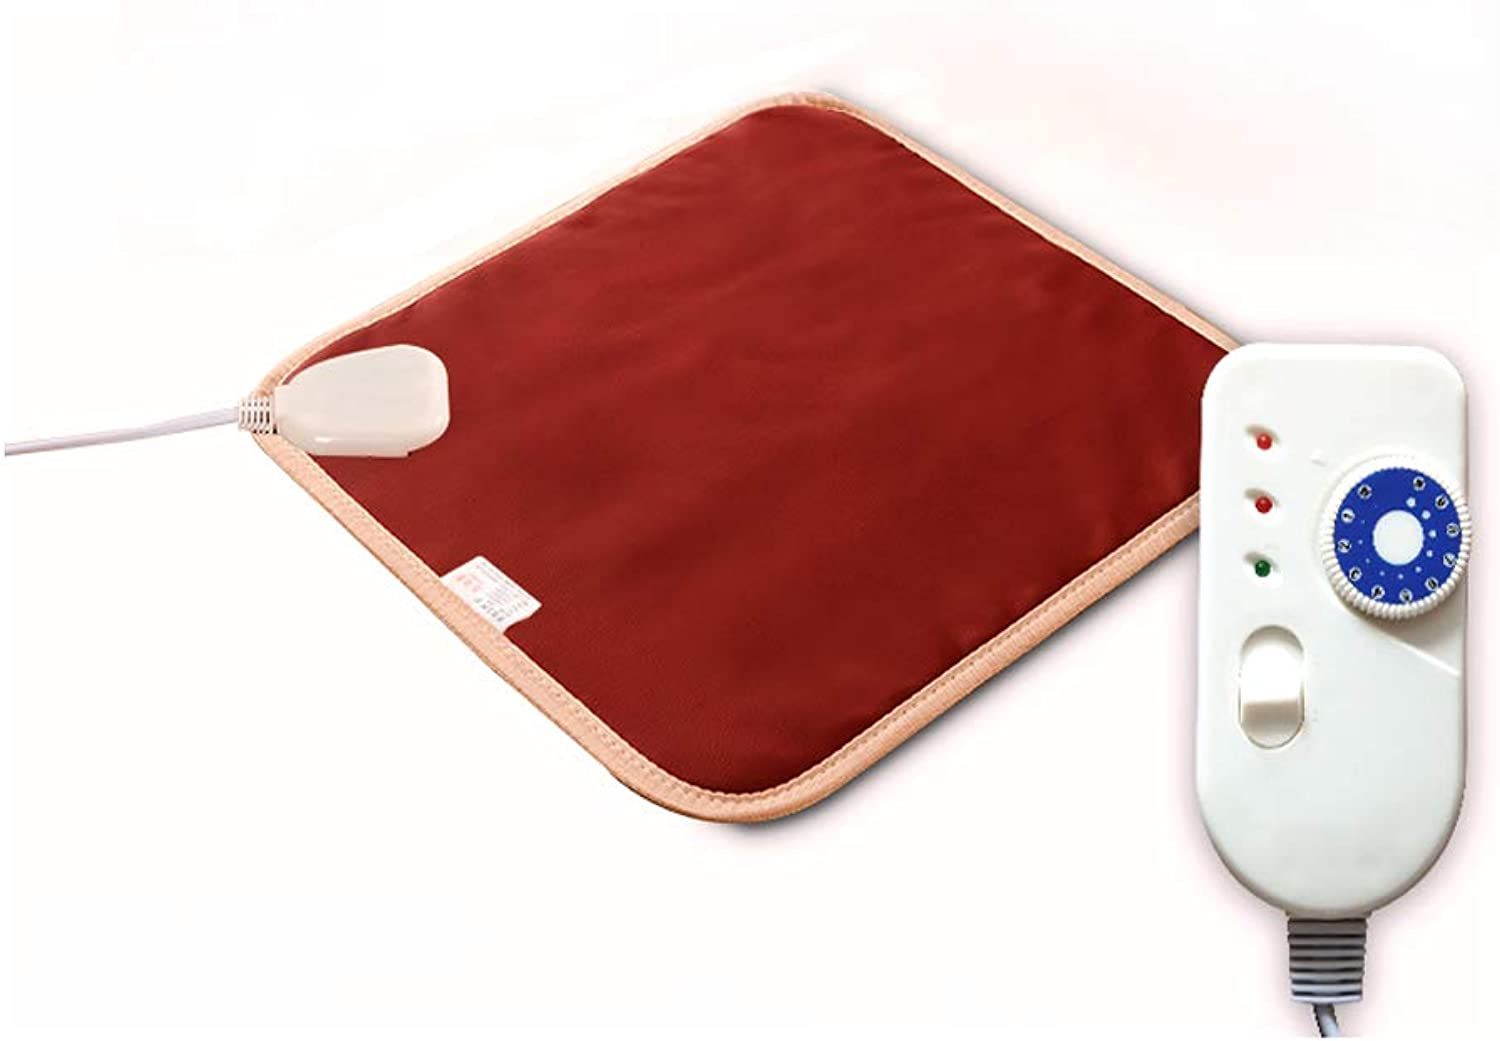 Pet Heat Pad Dog Cat Electric Heating Pad Waterproof 10 Levels of Temperature Adjustable with Chew Resistant Steel Cord 15.7 x23.6 ,Red,S